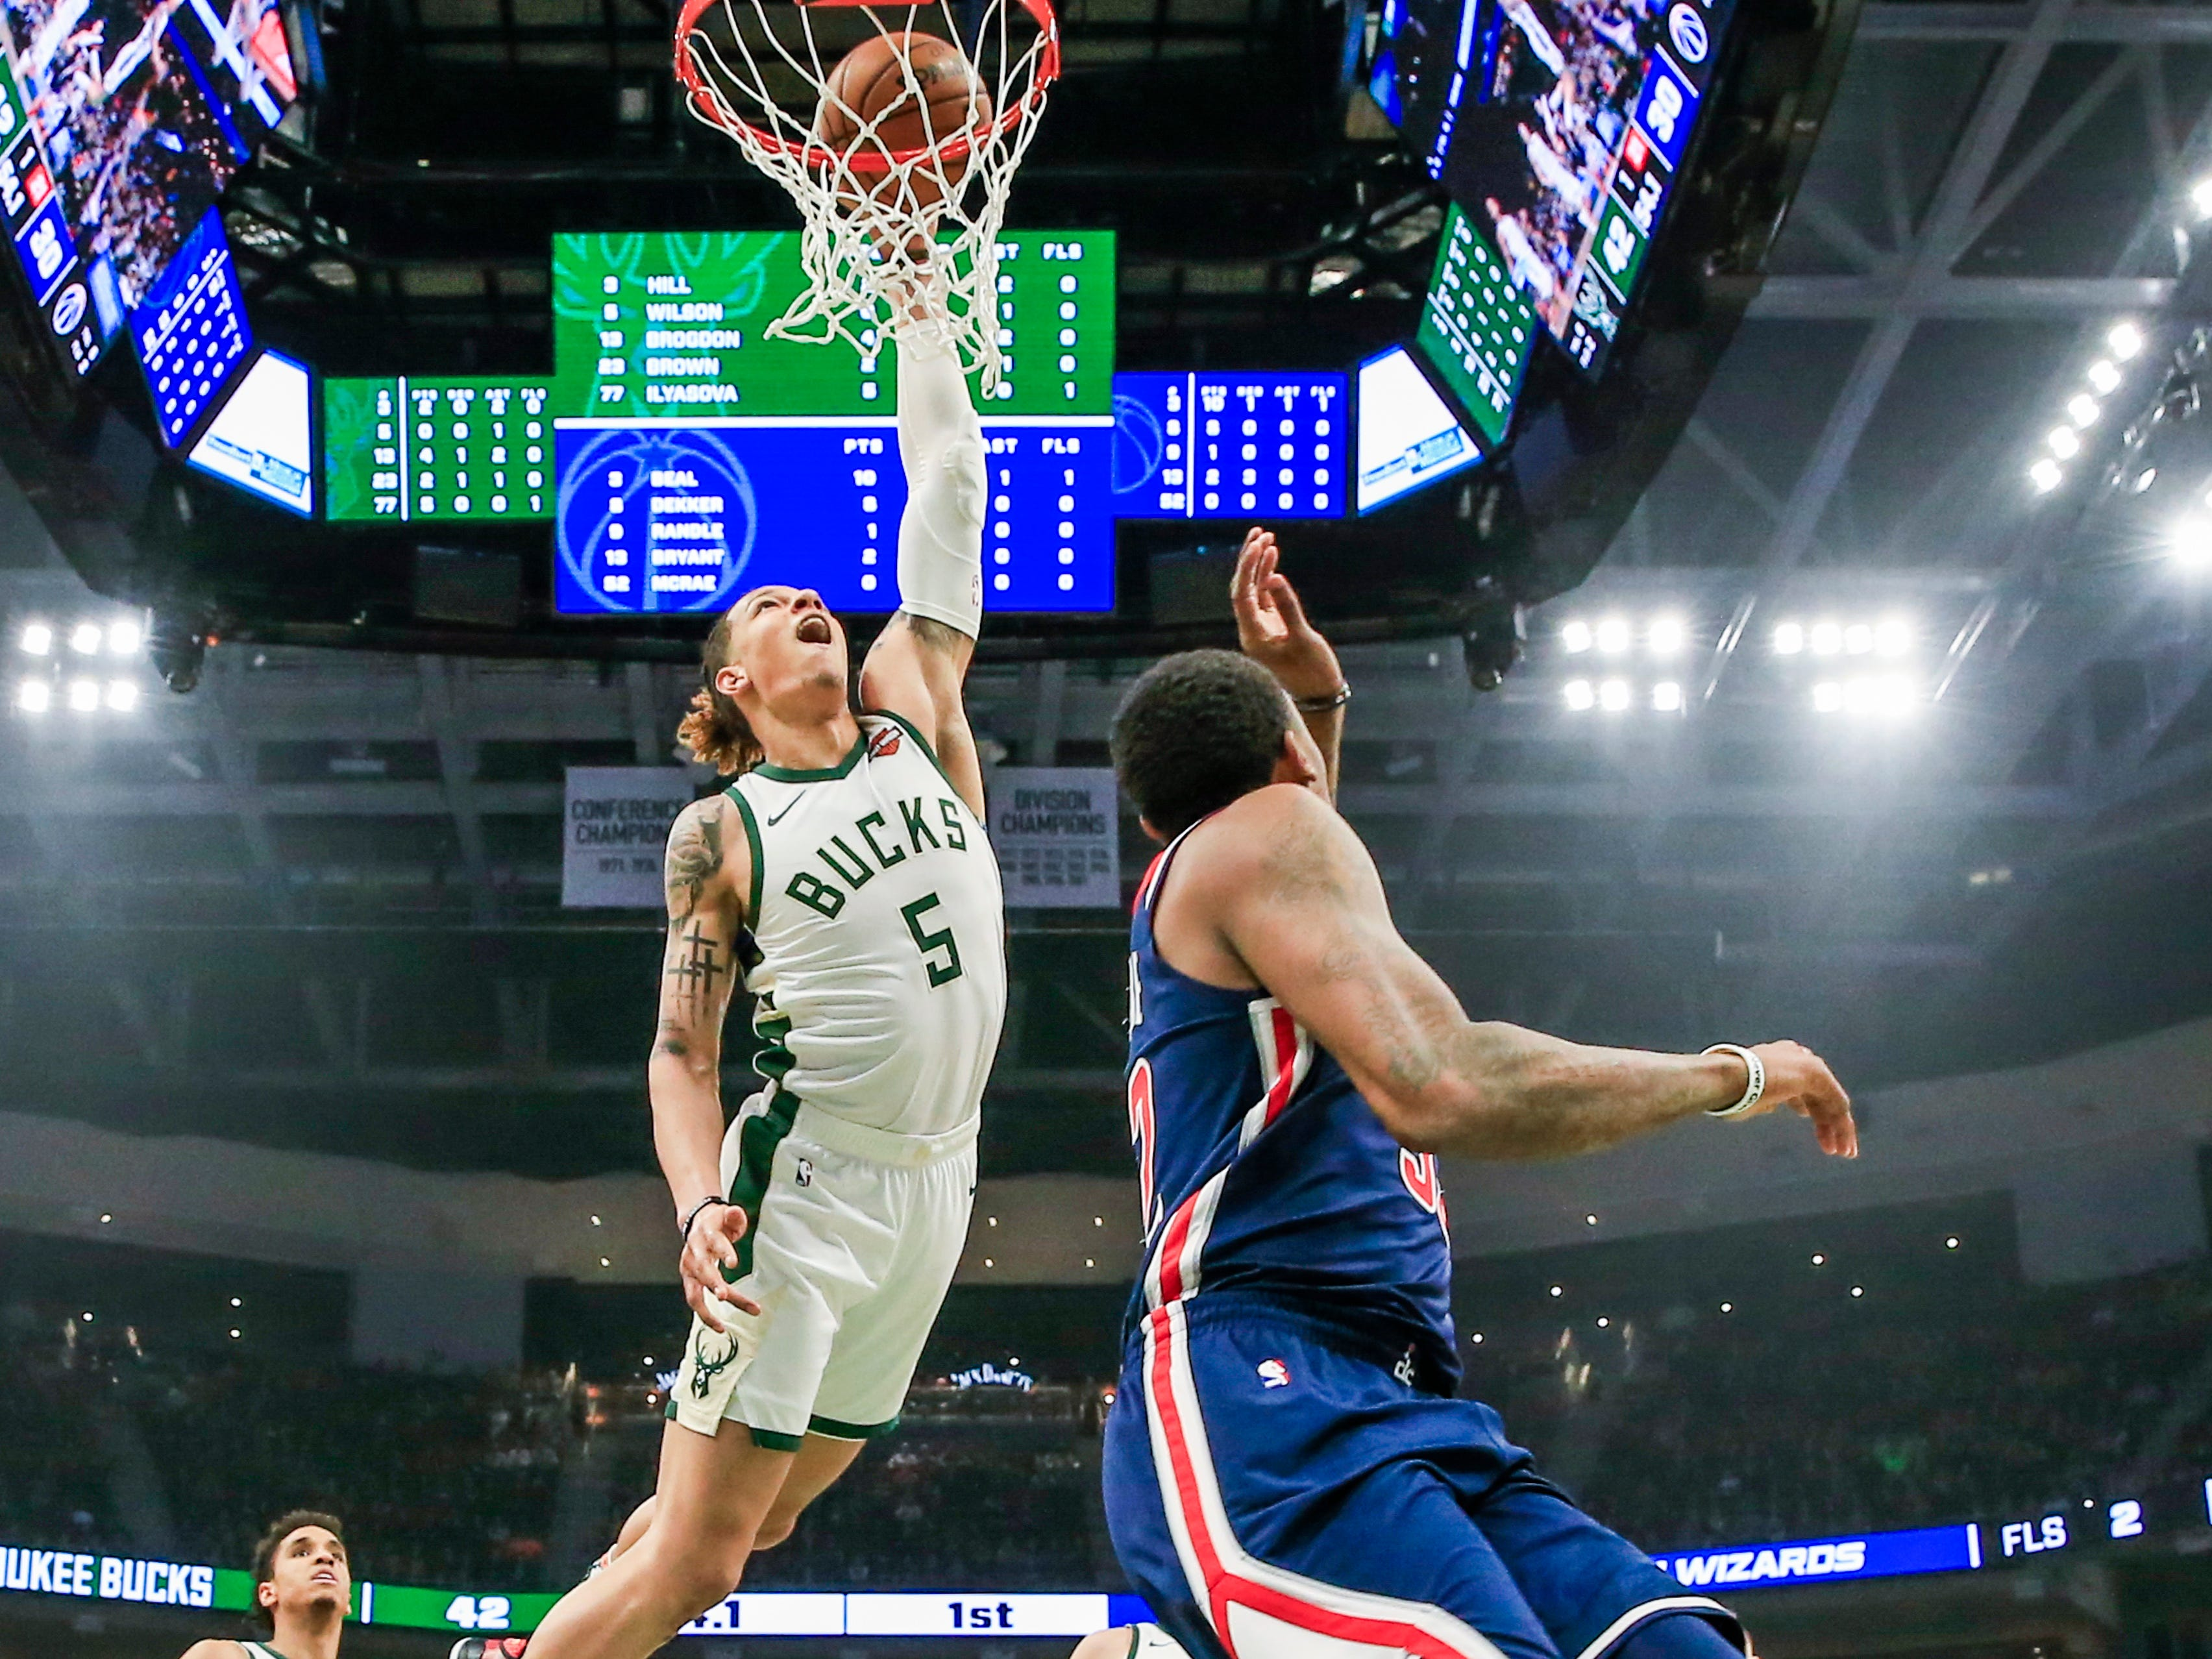 Bucks forward DJ Wilson finishes a fast break with a dunk against the Wizards during the first quarter on Wednesday night.